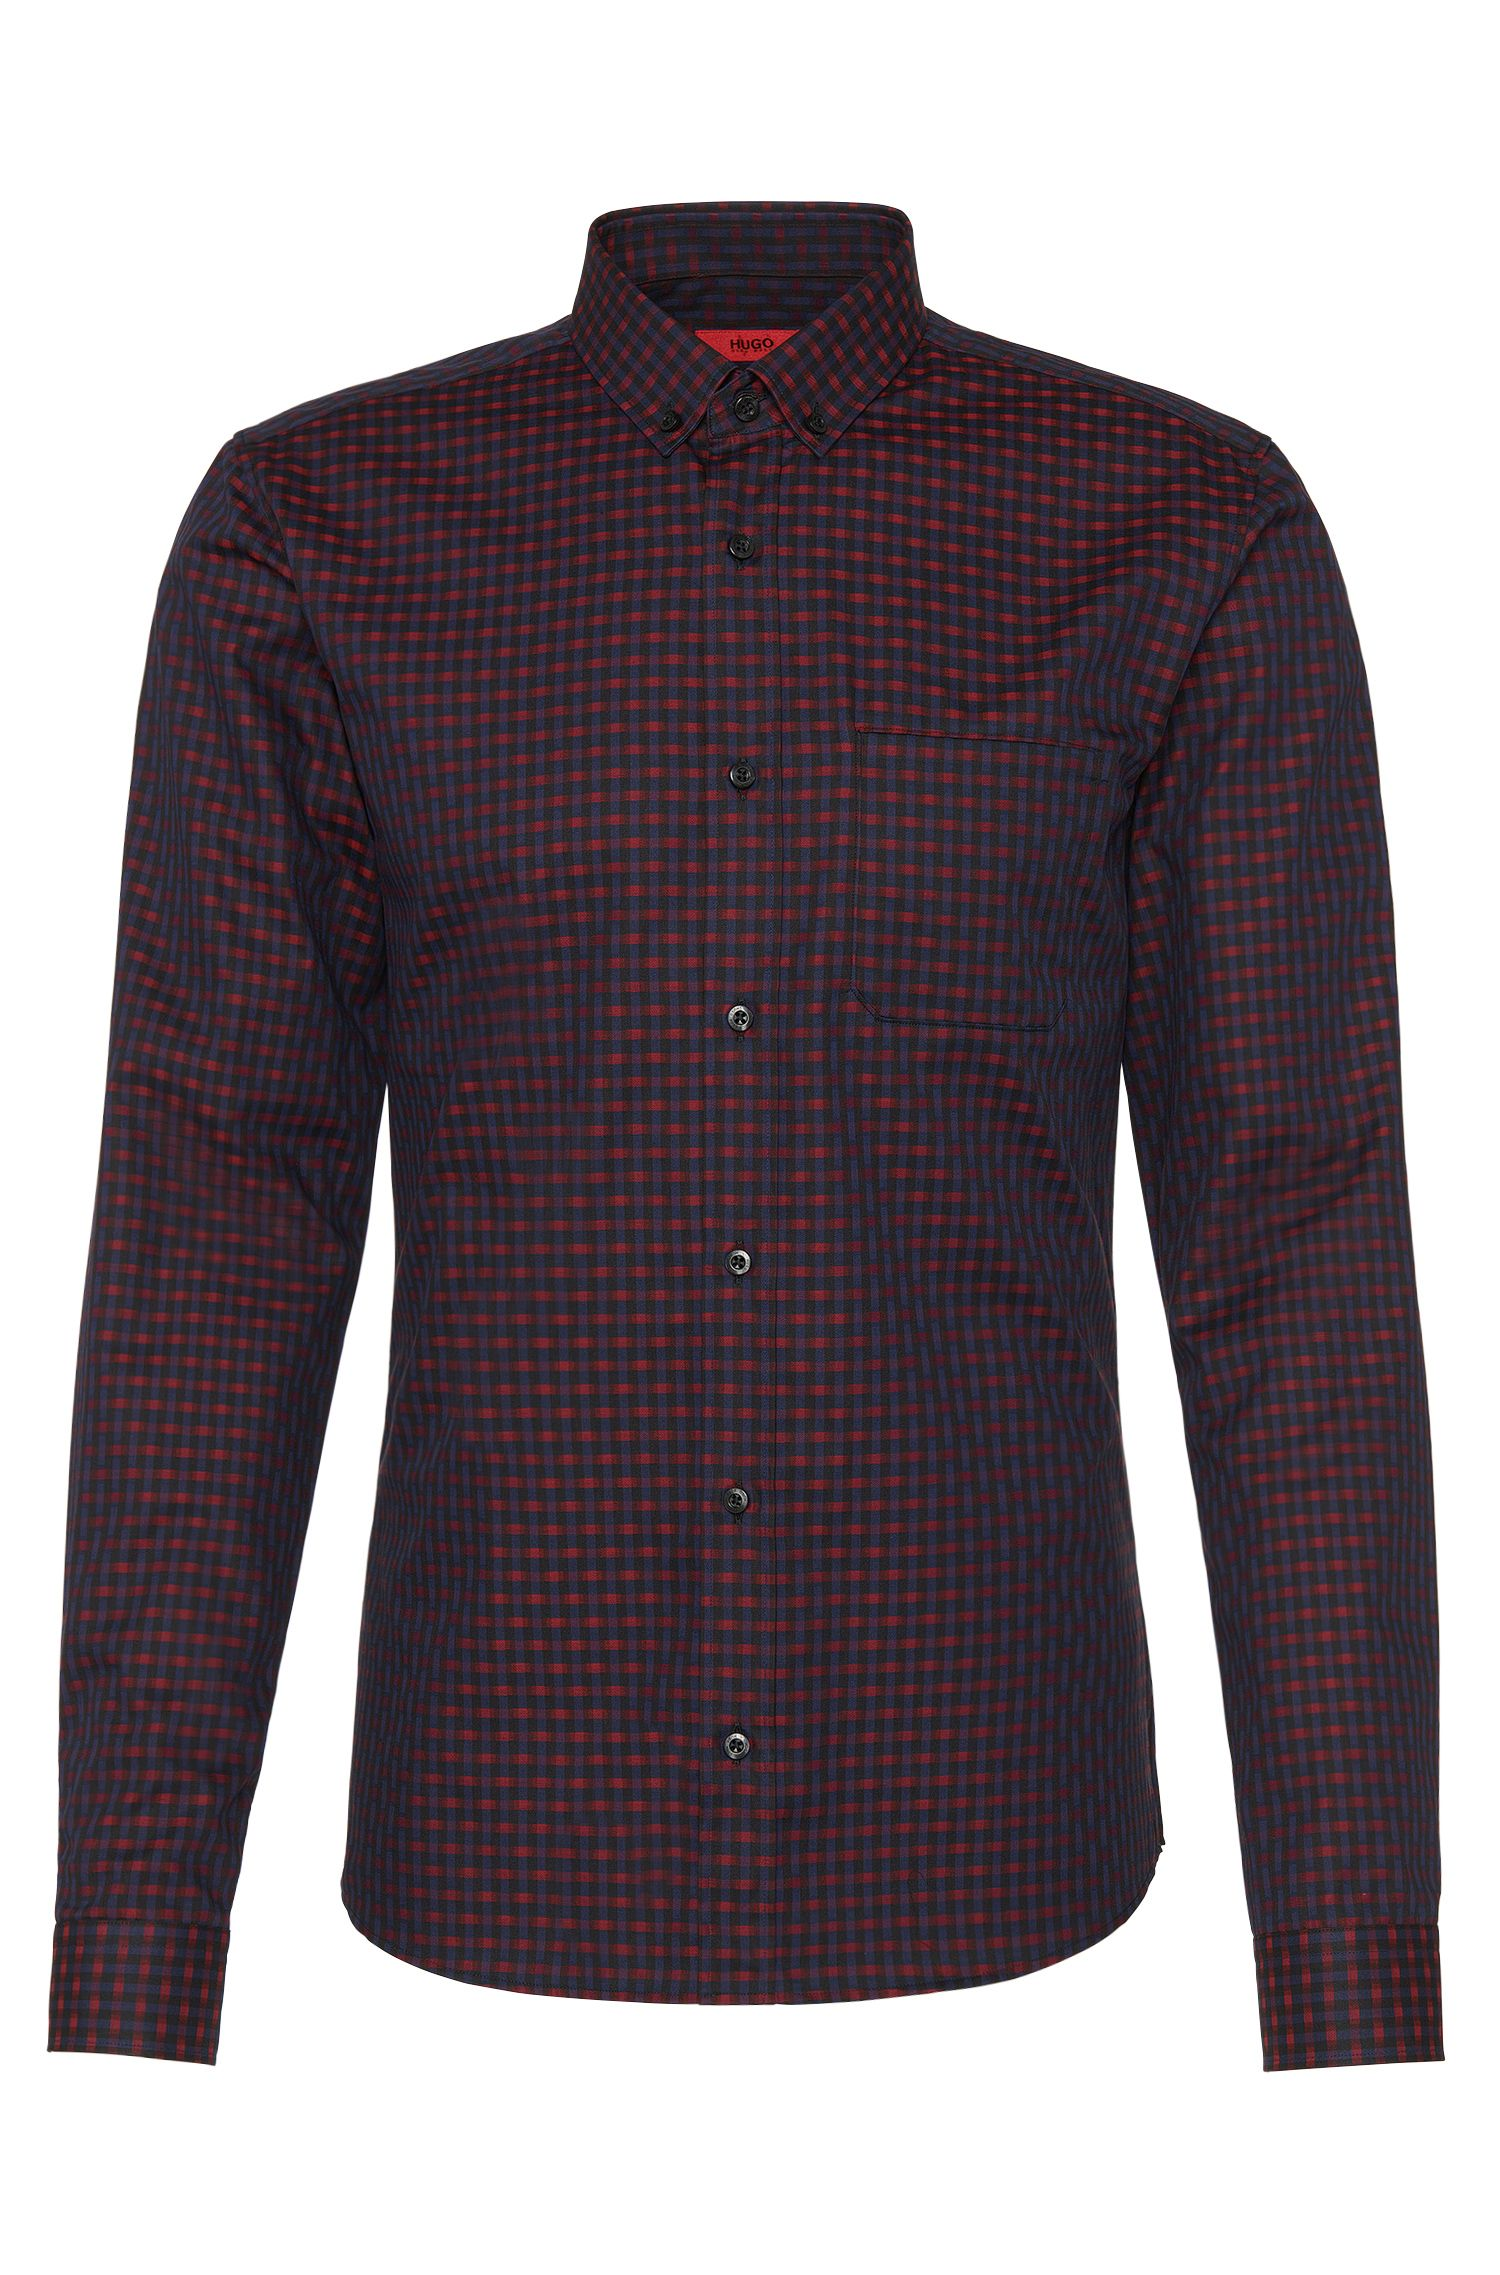 'Enico' | Slim Fit, Cotton Button Down Shirt